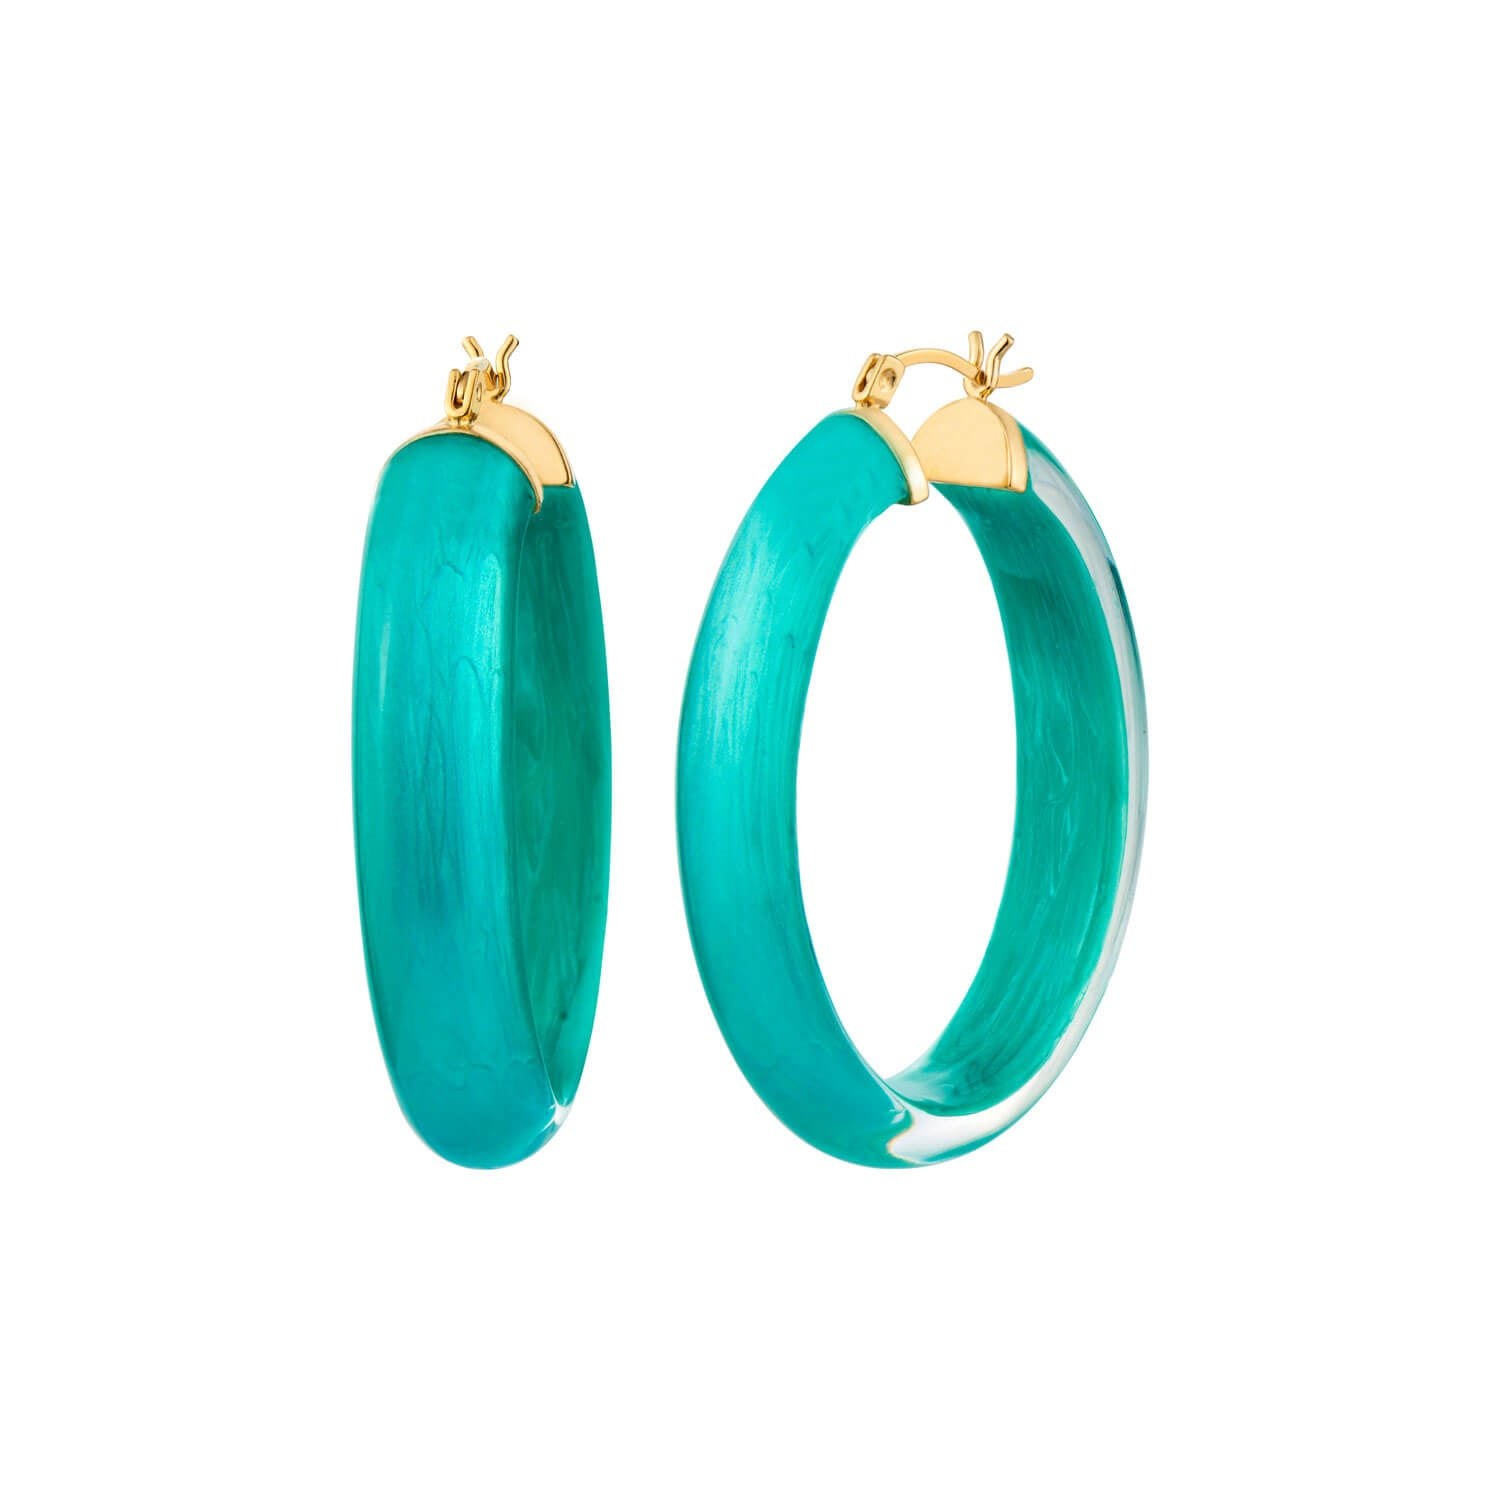 Medium Oval Illusion Lucite Hoops - Click Top